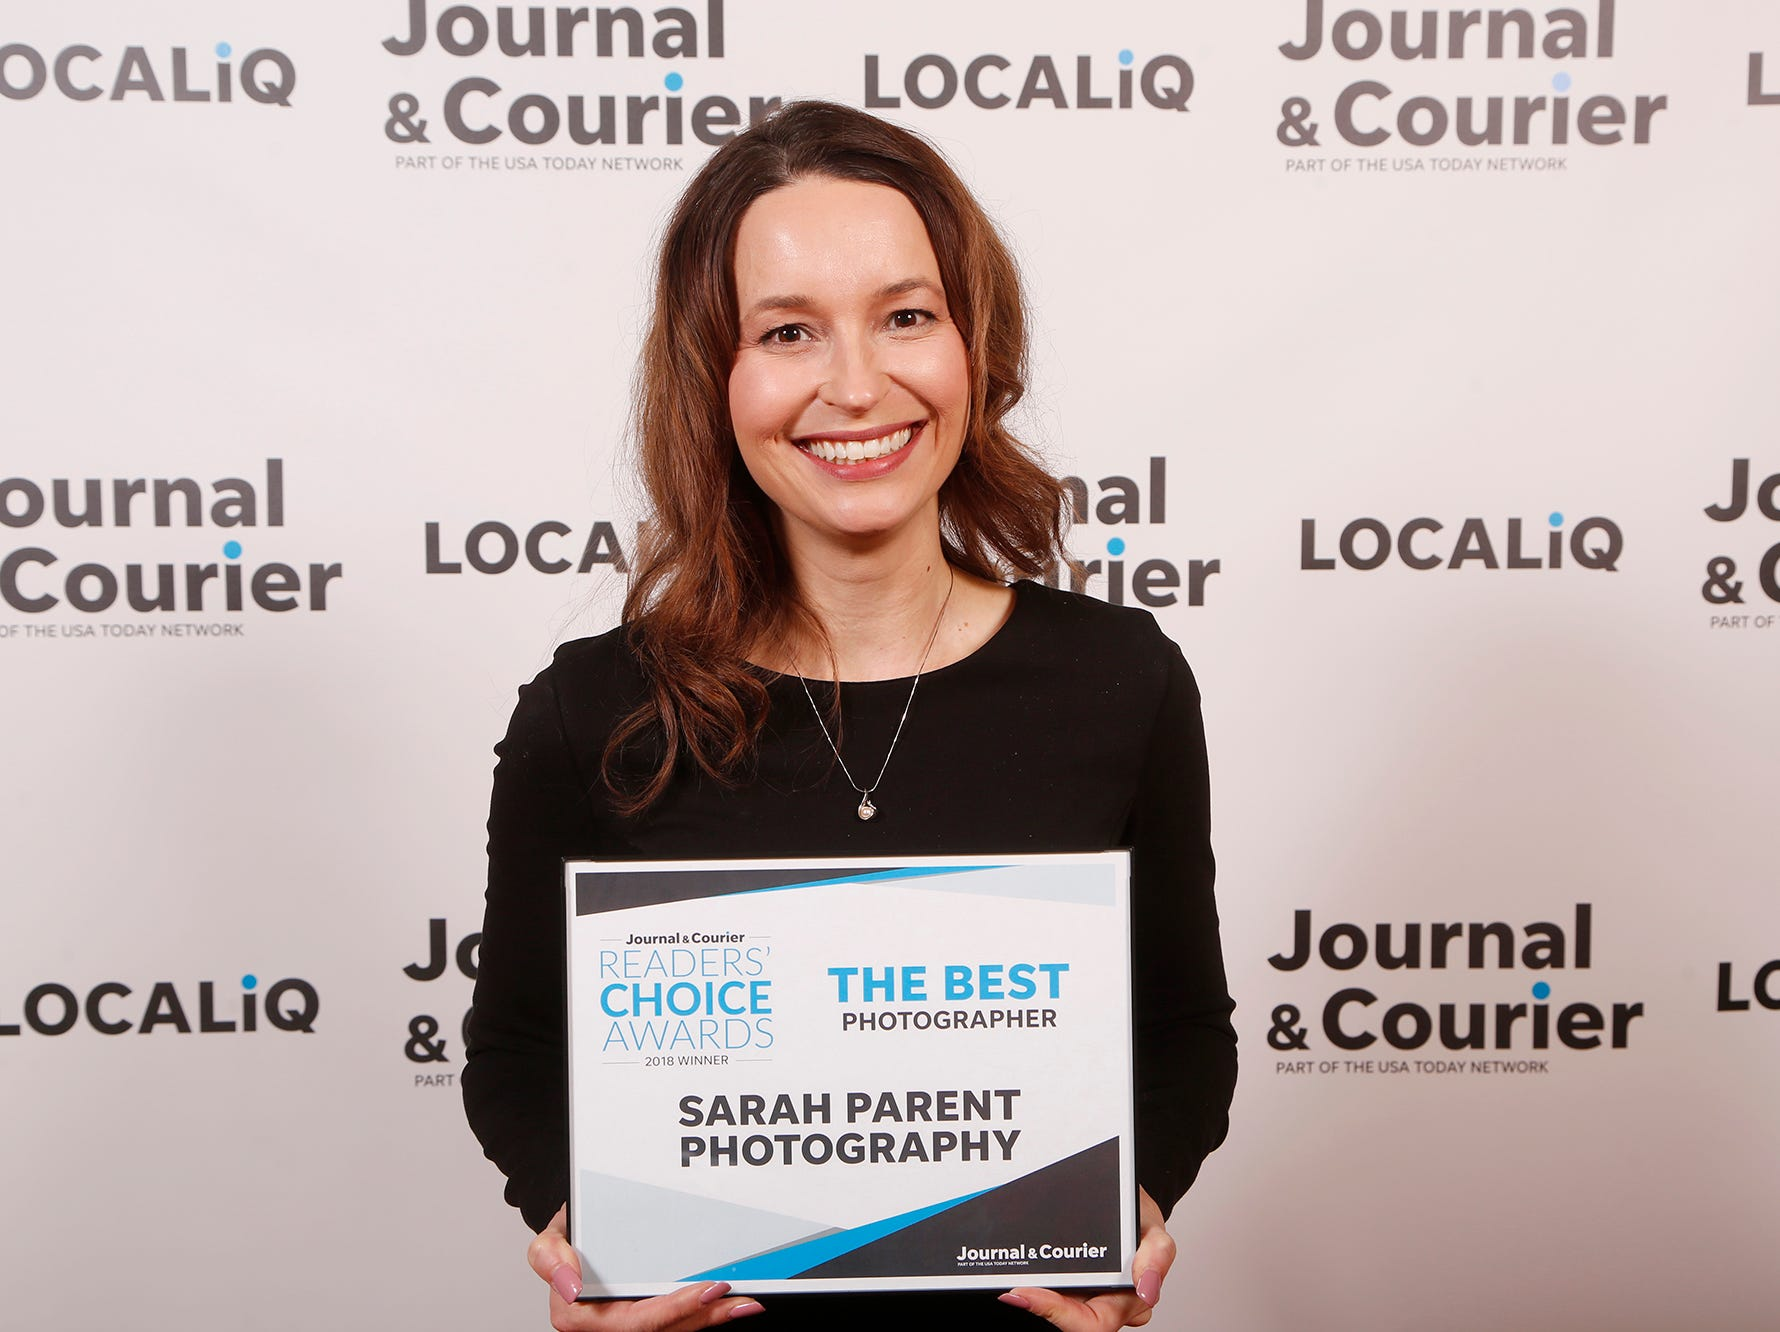 Sarah Parent Photography, Journal & Courier Readers' Choice Awards winner for the best photographer.